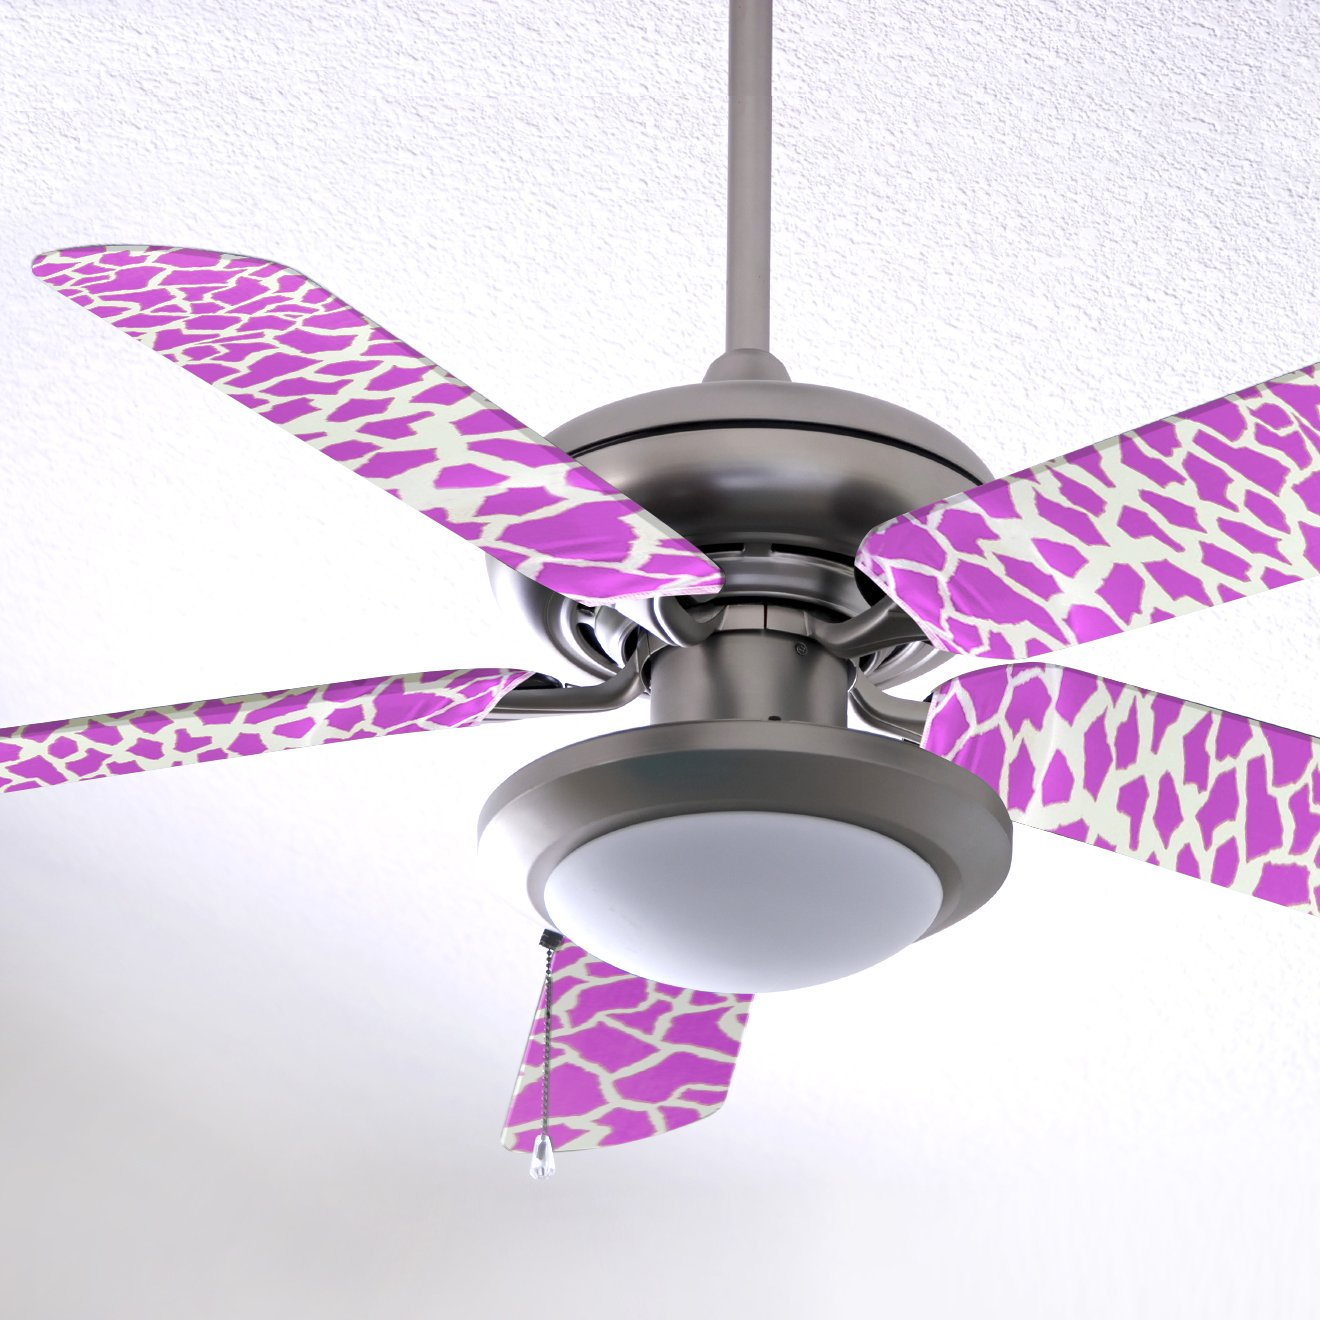 Fancy Blade Ceiling Fan Accesories Blade Cover Decoration, Pink Giraffe